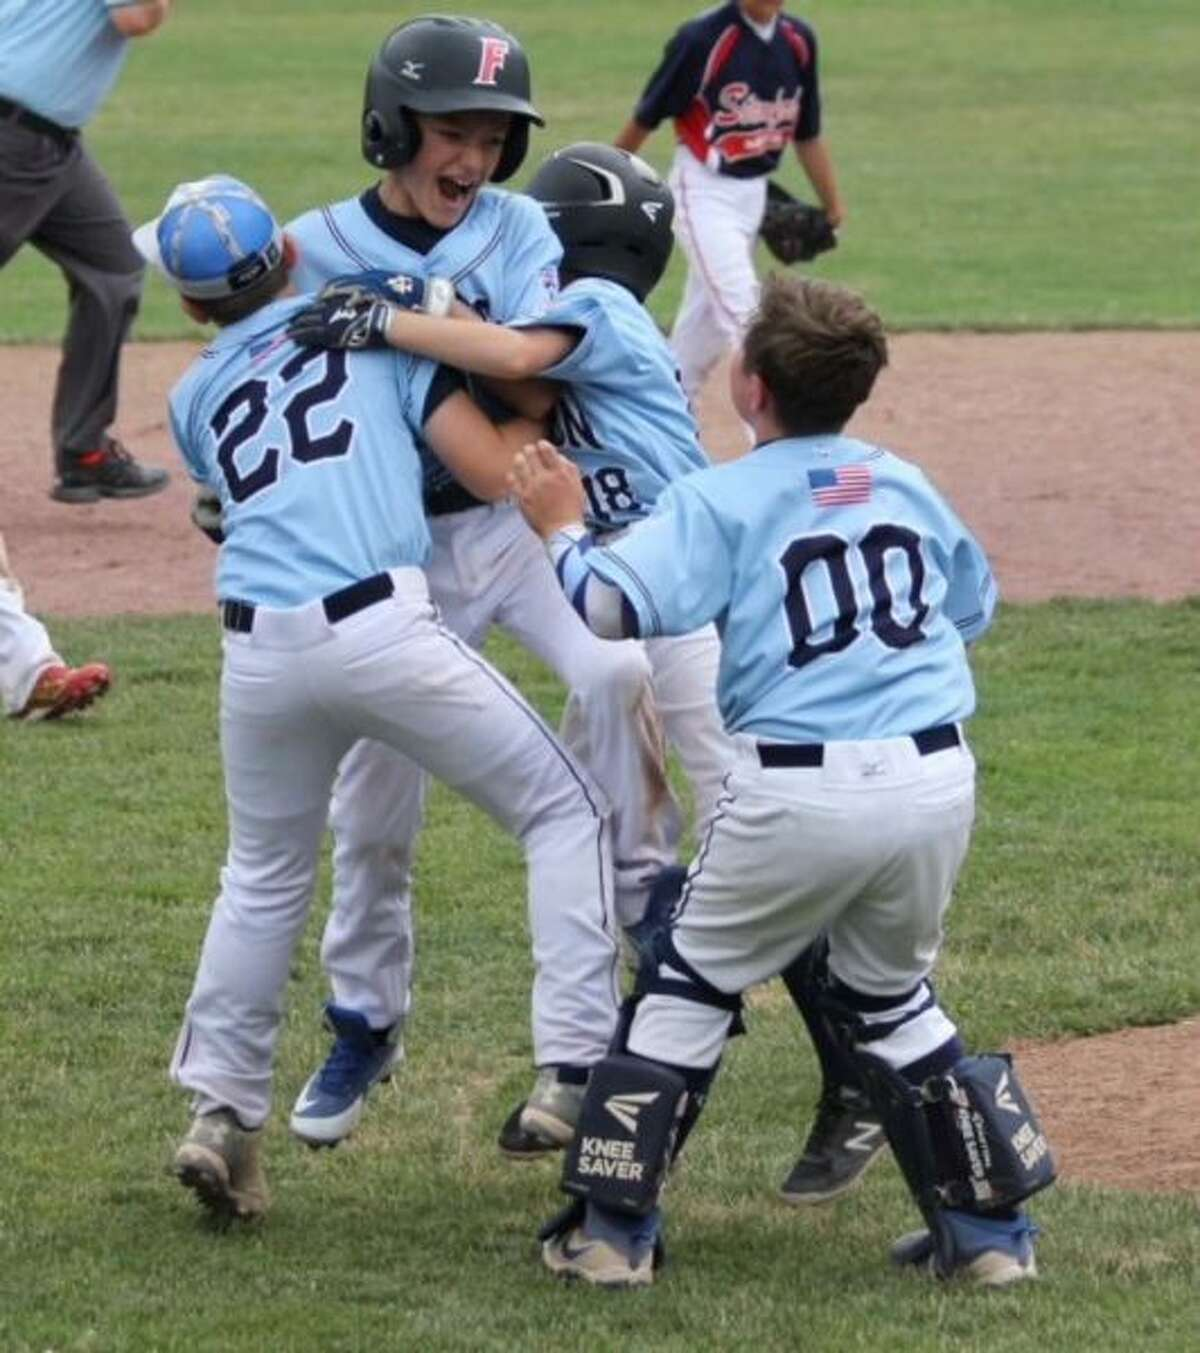 Tanner Schmauch is mobbed by his teammates after his RBI double in the bottom of the sixth gave the Wilton 11U baseball team a walk-off 10-9 win over Stamford North on Sunday. - Vin Forgione photo